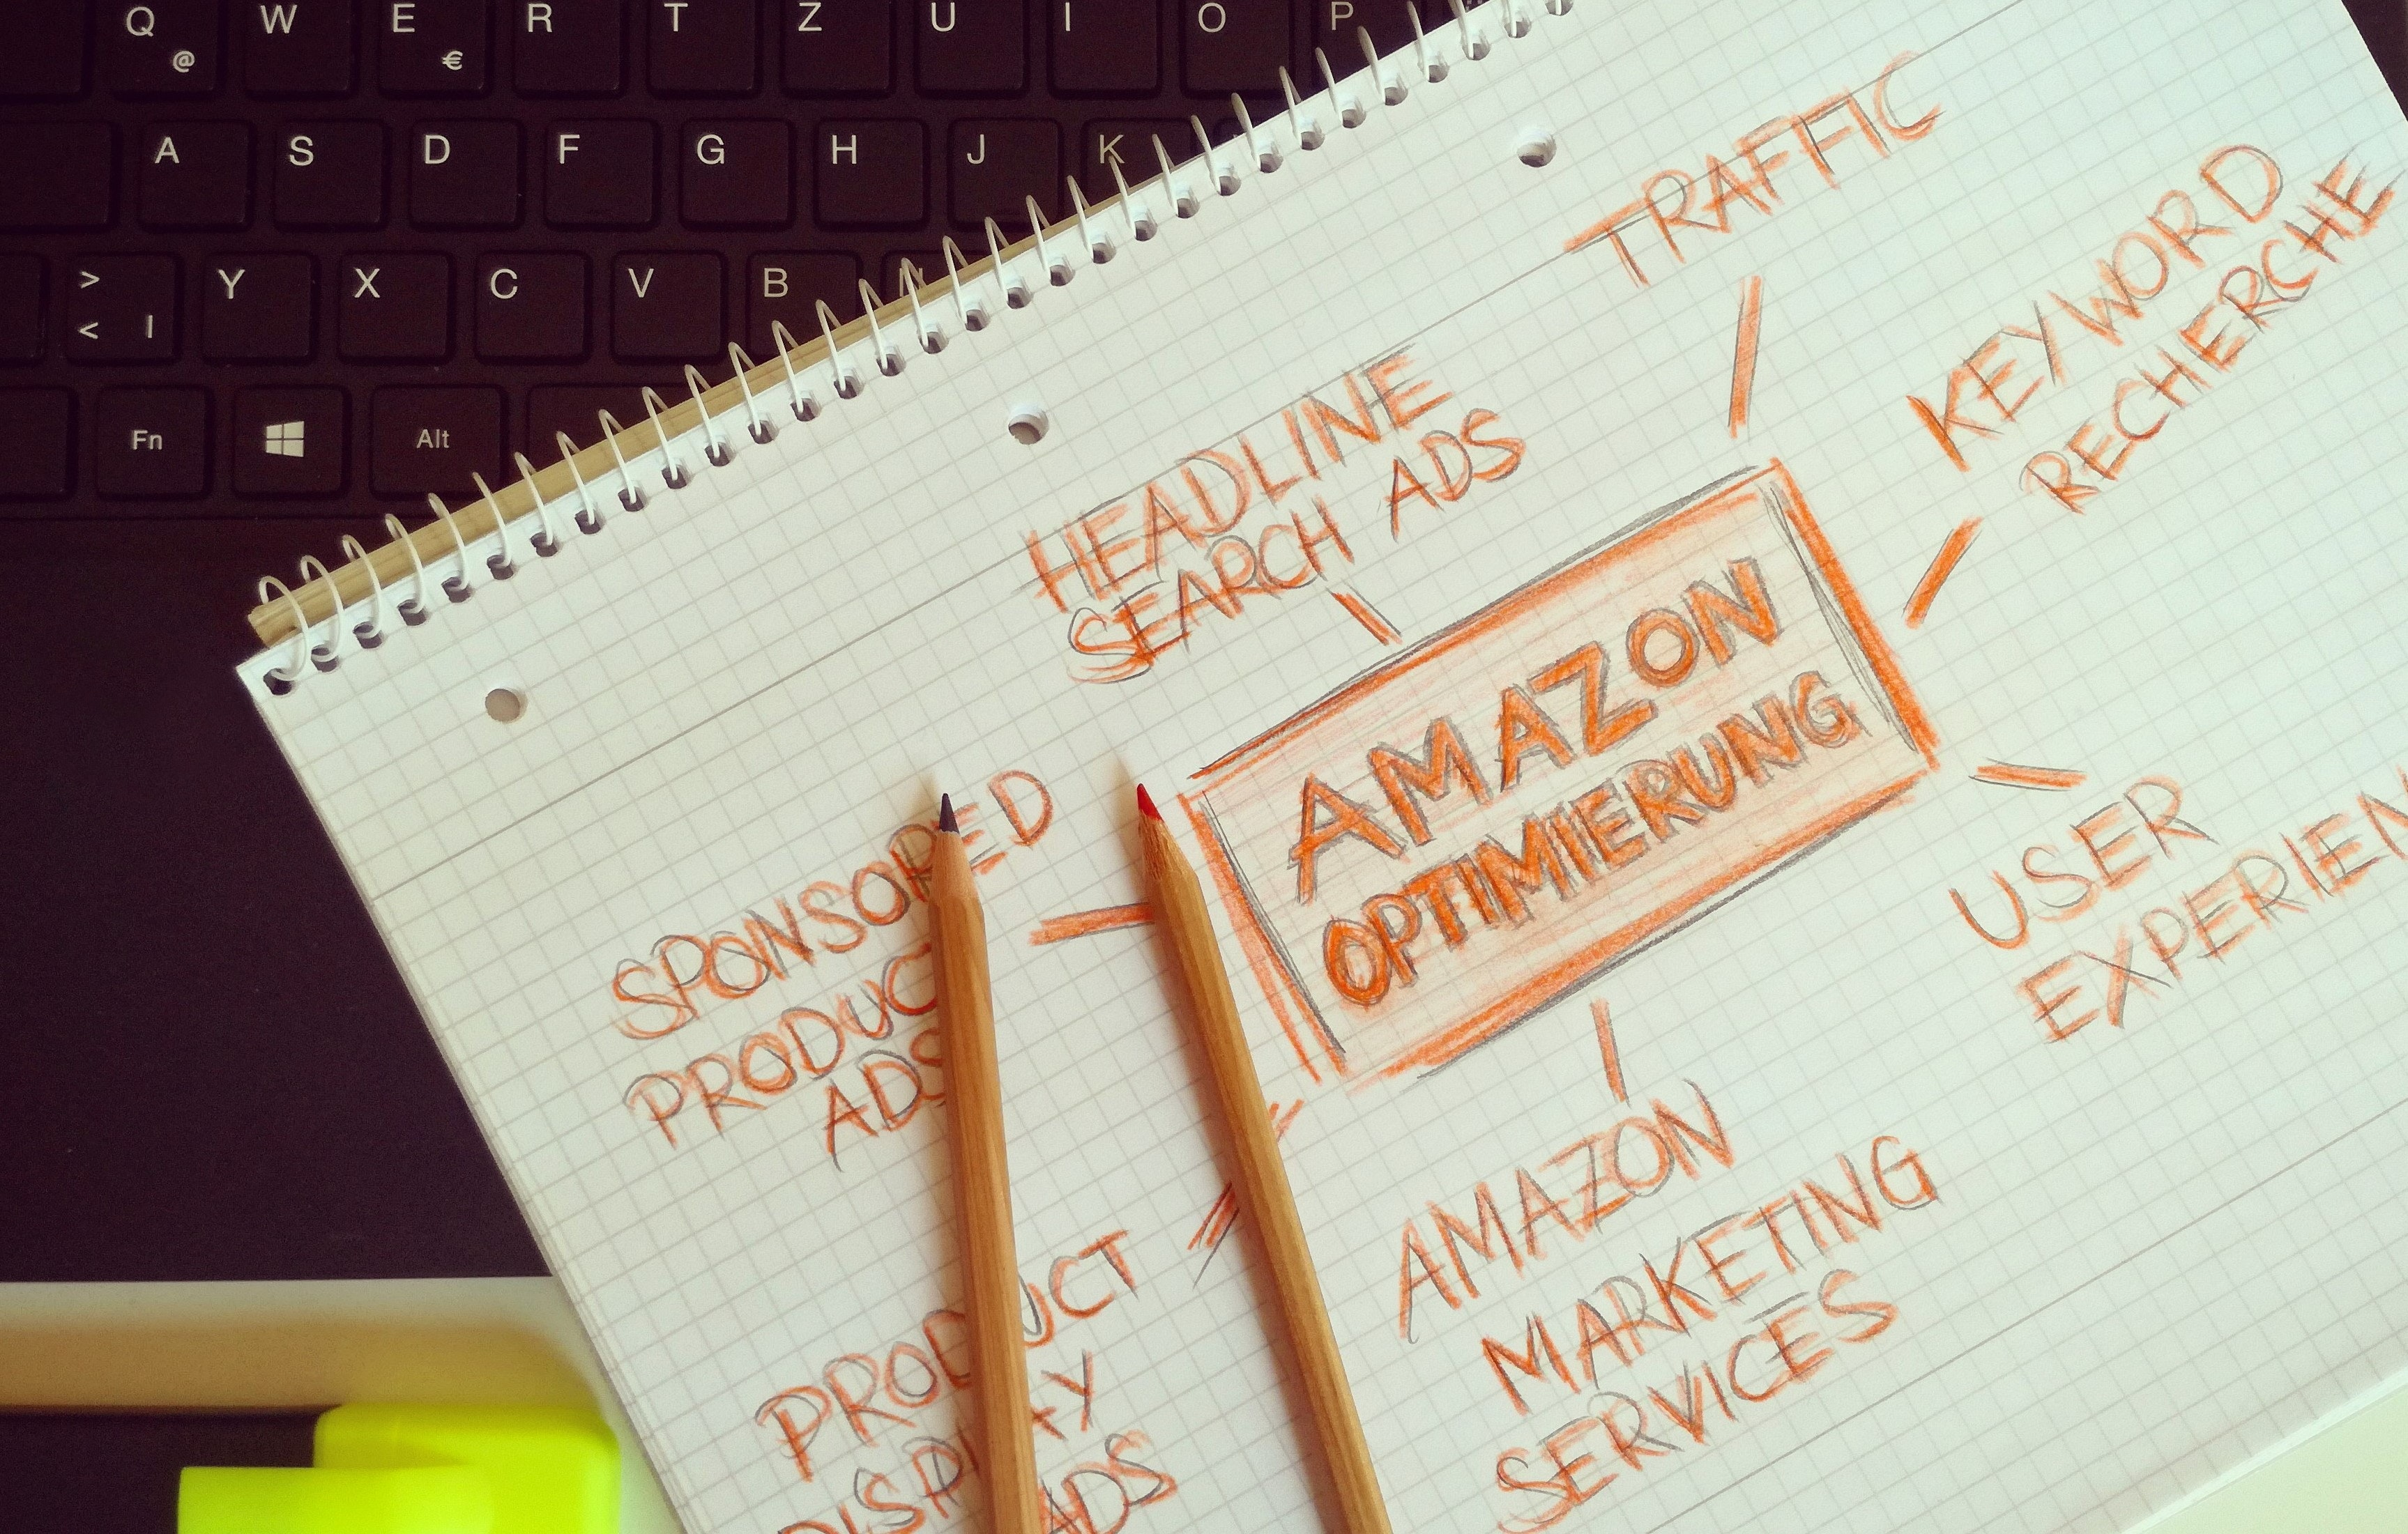 Use search engine optimization advertising in order to meet your goals